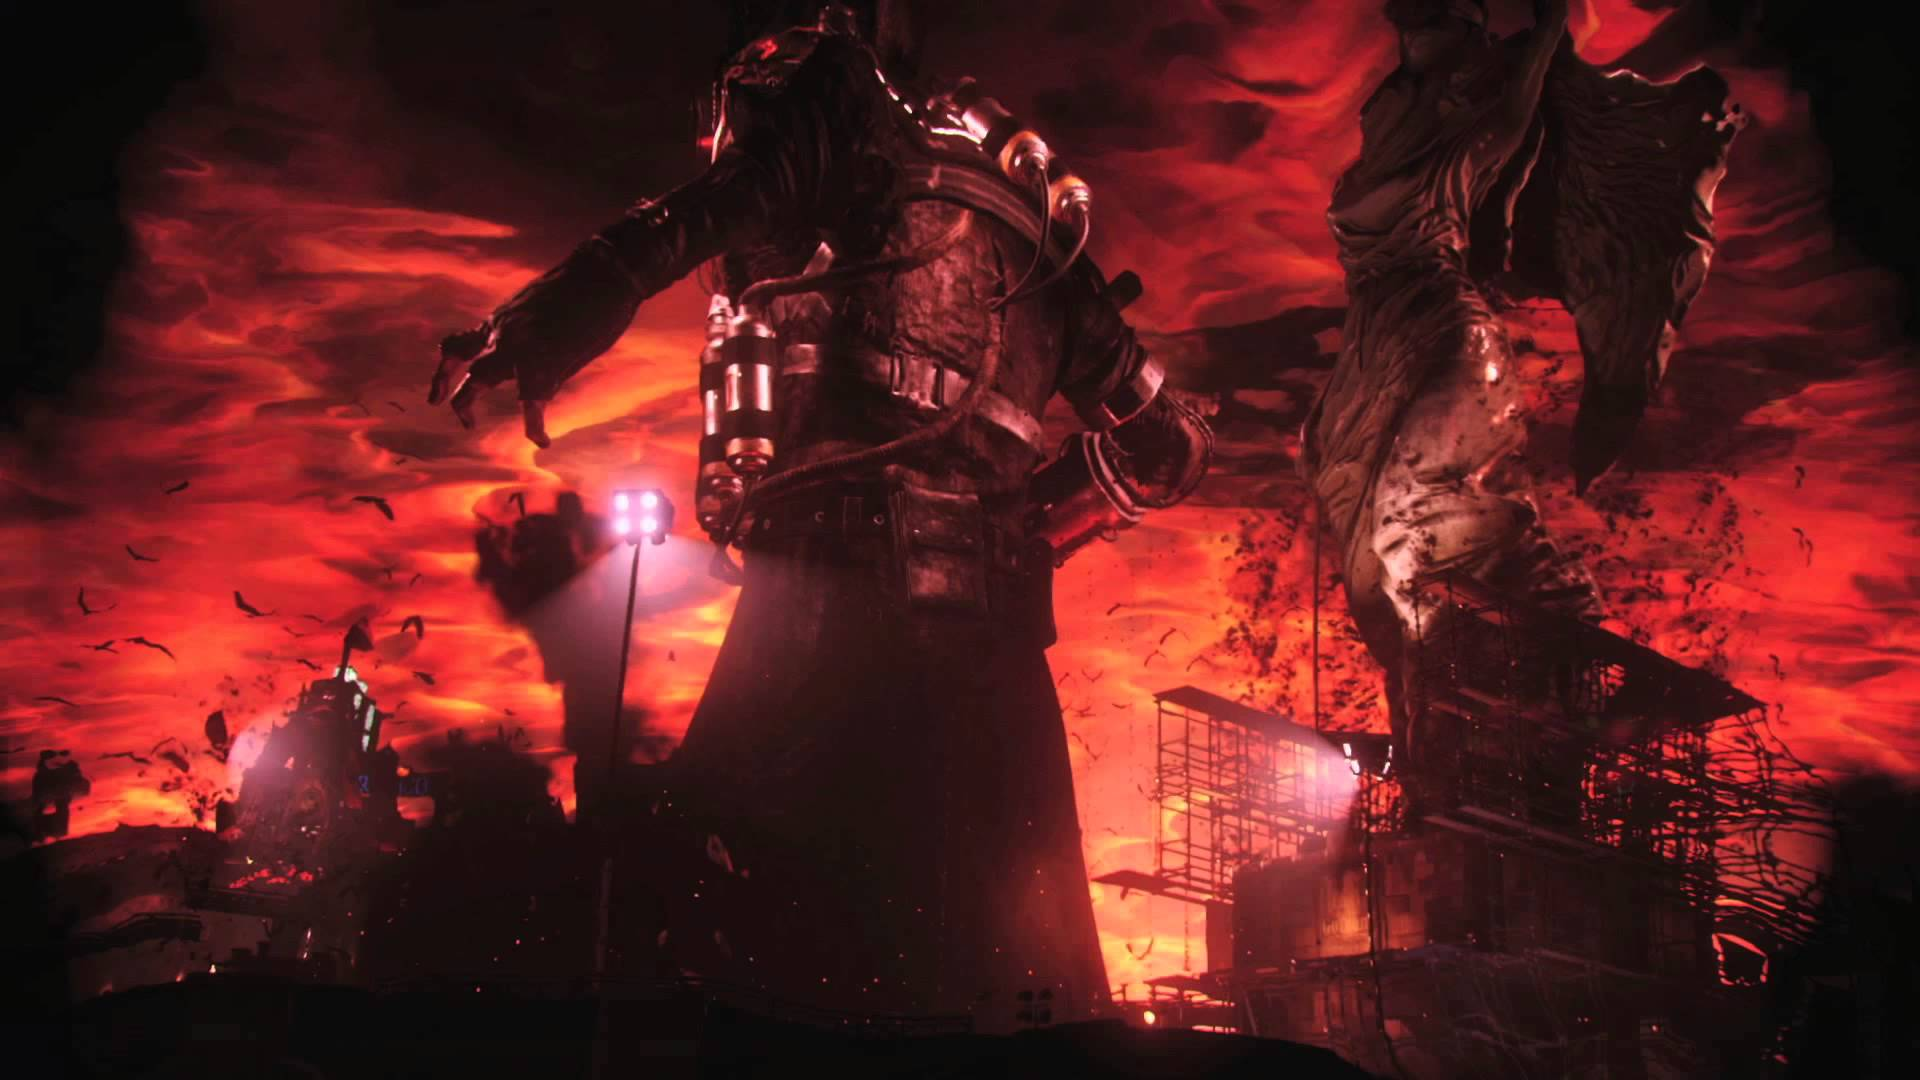 Batman Arkham Knight Scarecrow Trailer